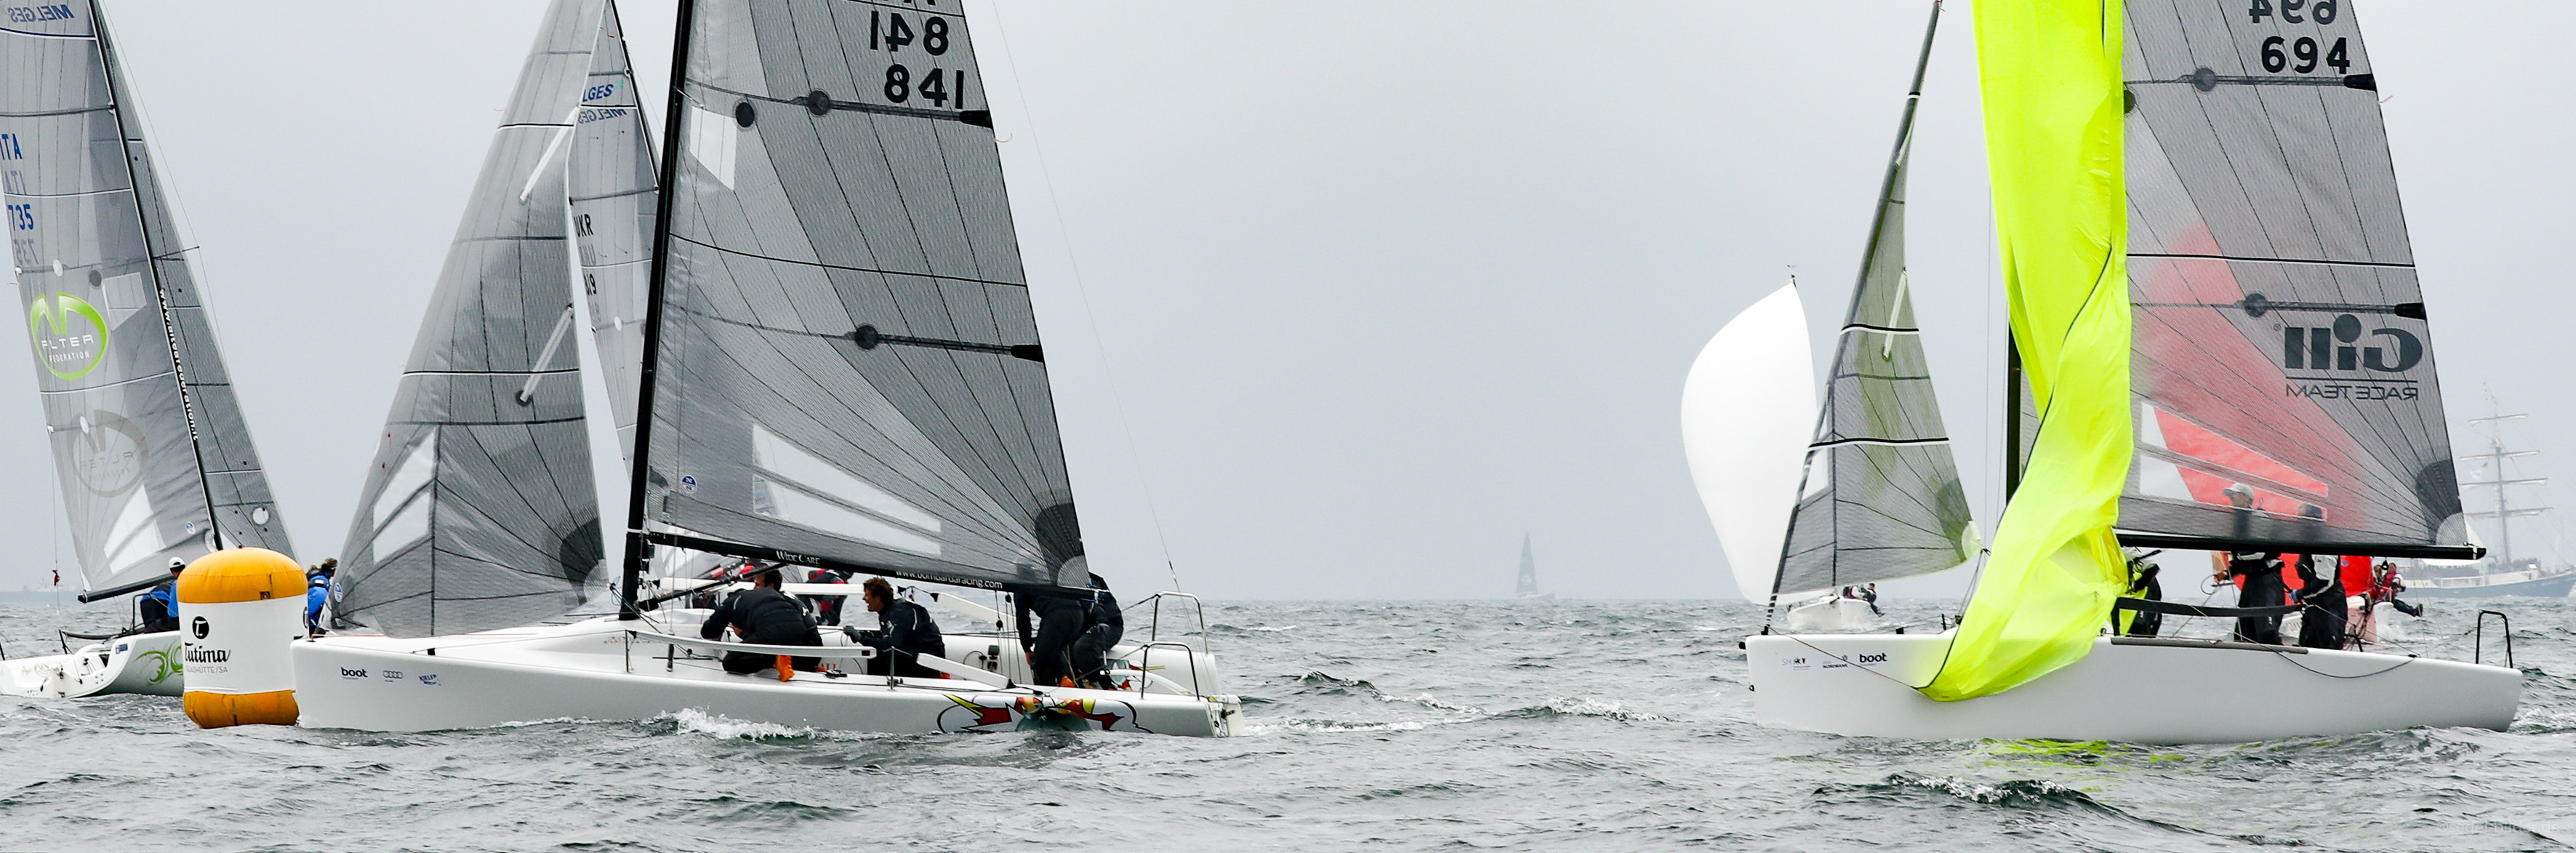 Andrea Pozzi's Bombarda ITA841 and Miles Quinton's Gill Race Team at Kiel Week 2